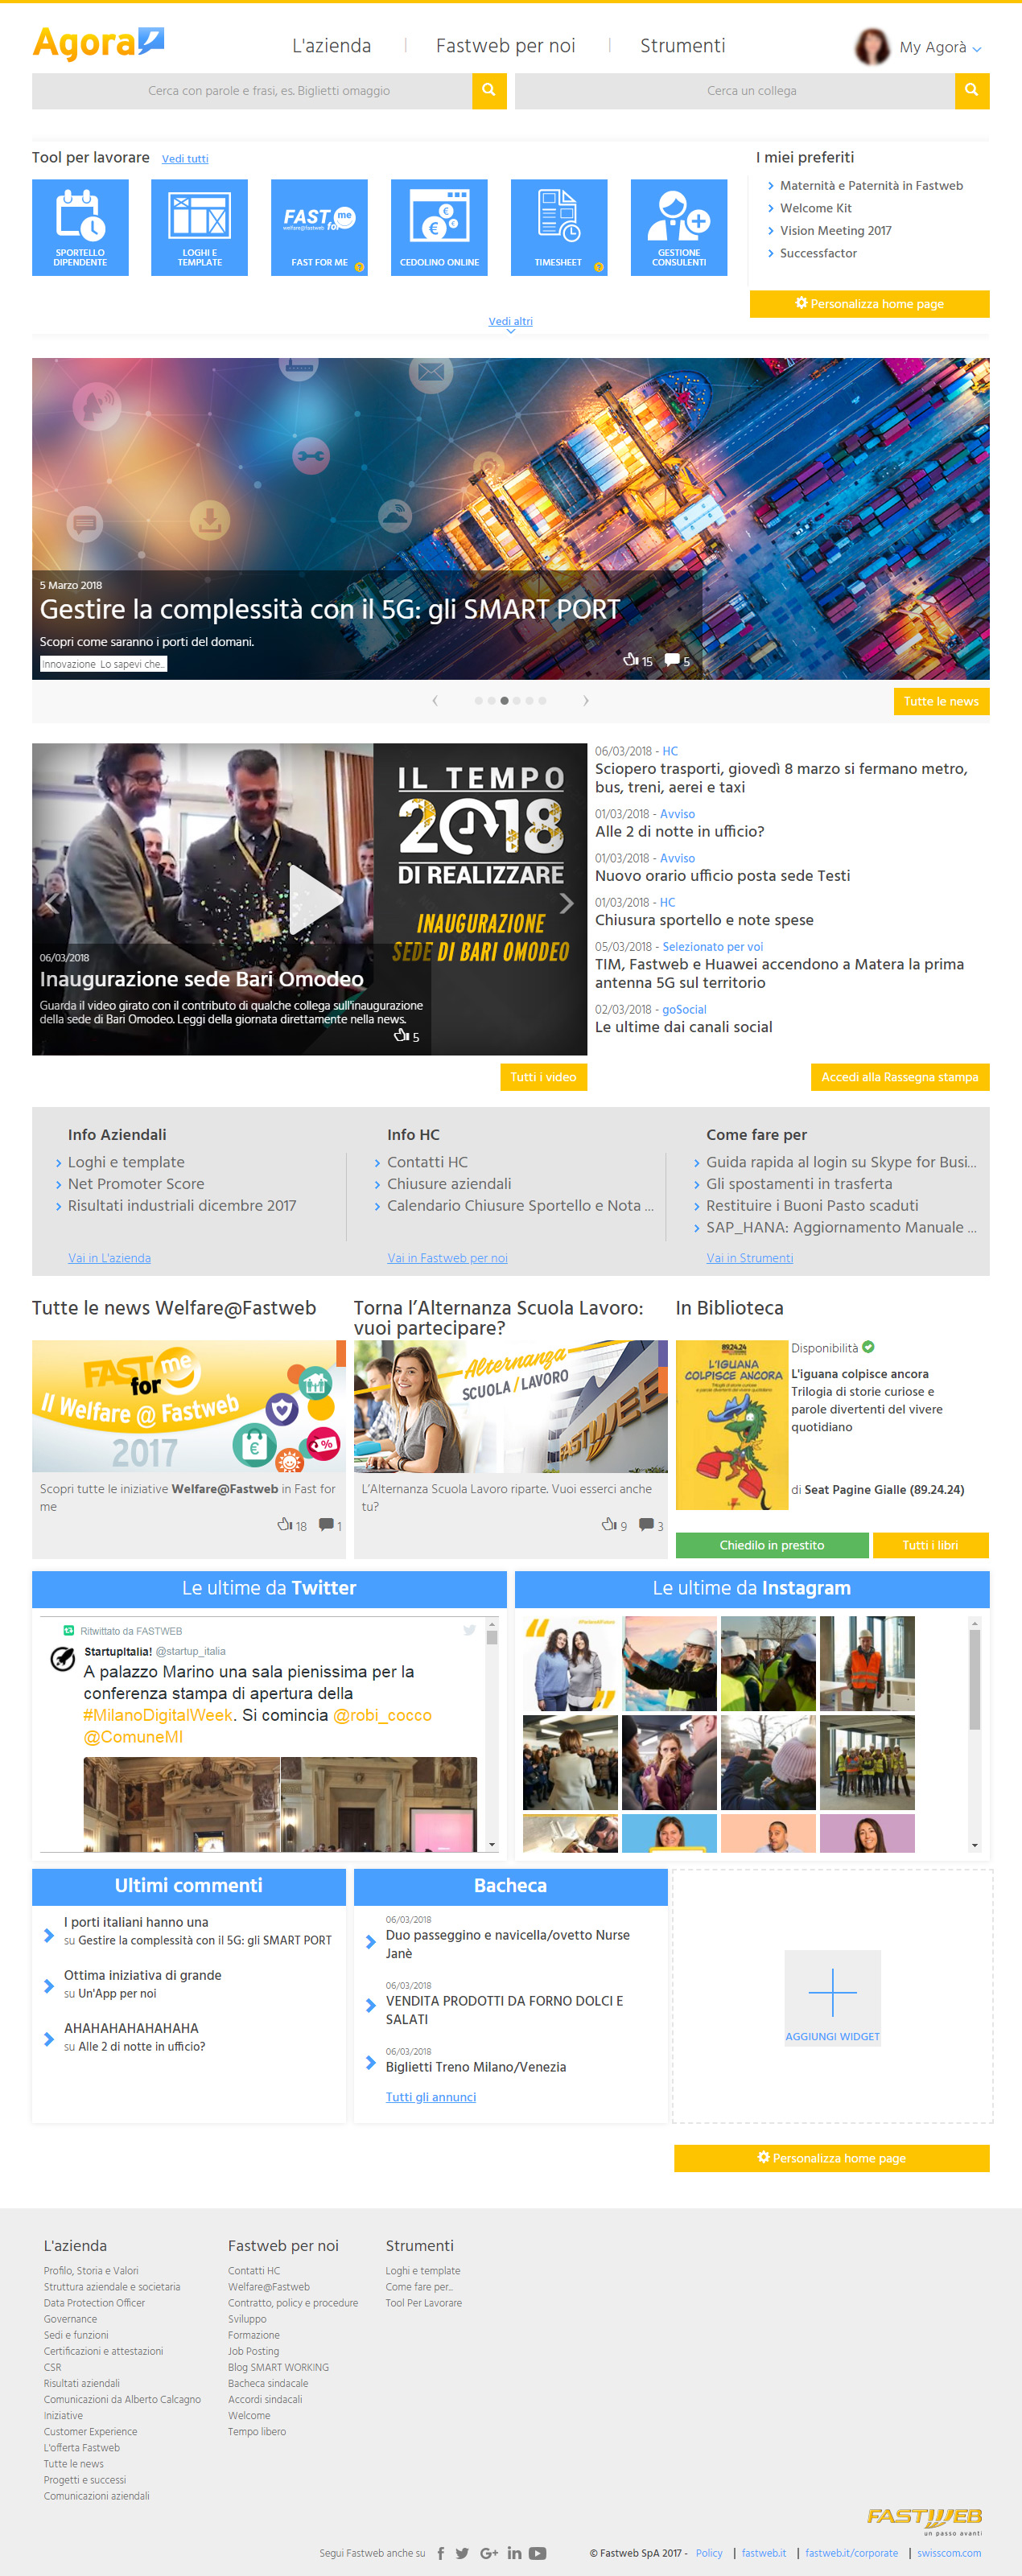 Fastweb_agora_home_page_[Intranet_management]